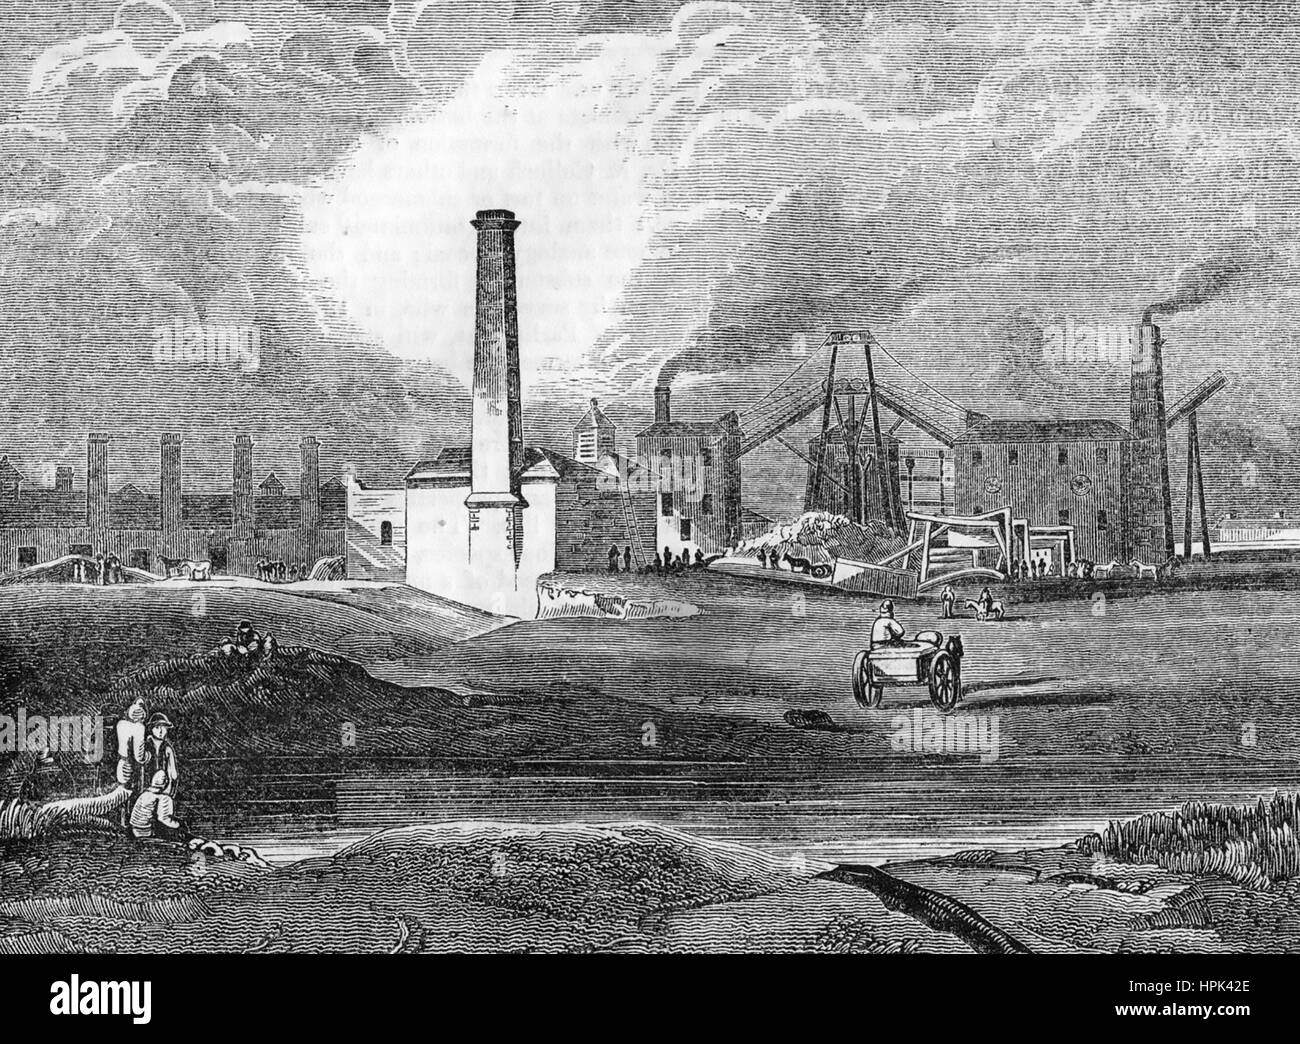 HULTON COLLIERY in the Lancashire coalfields owned by the reactionary William Hulton. Engraving about 1850. - Stock Image